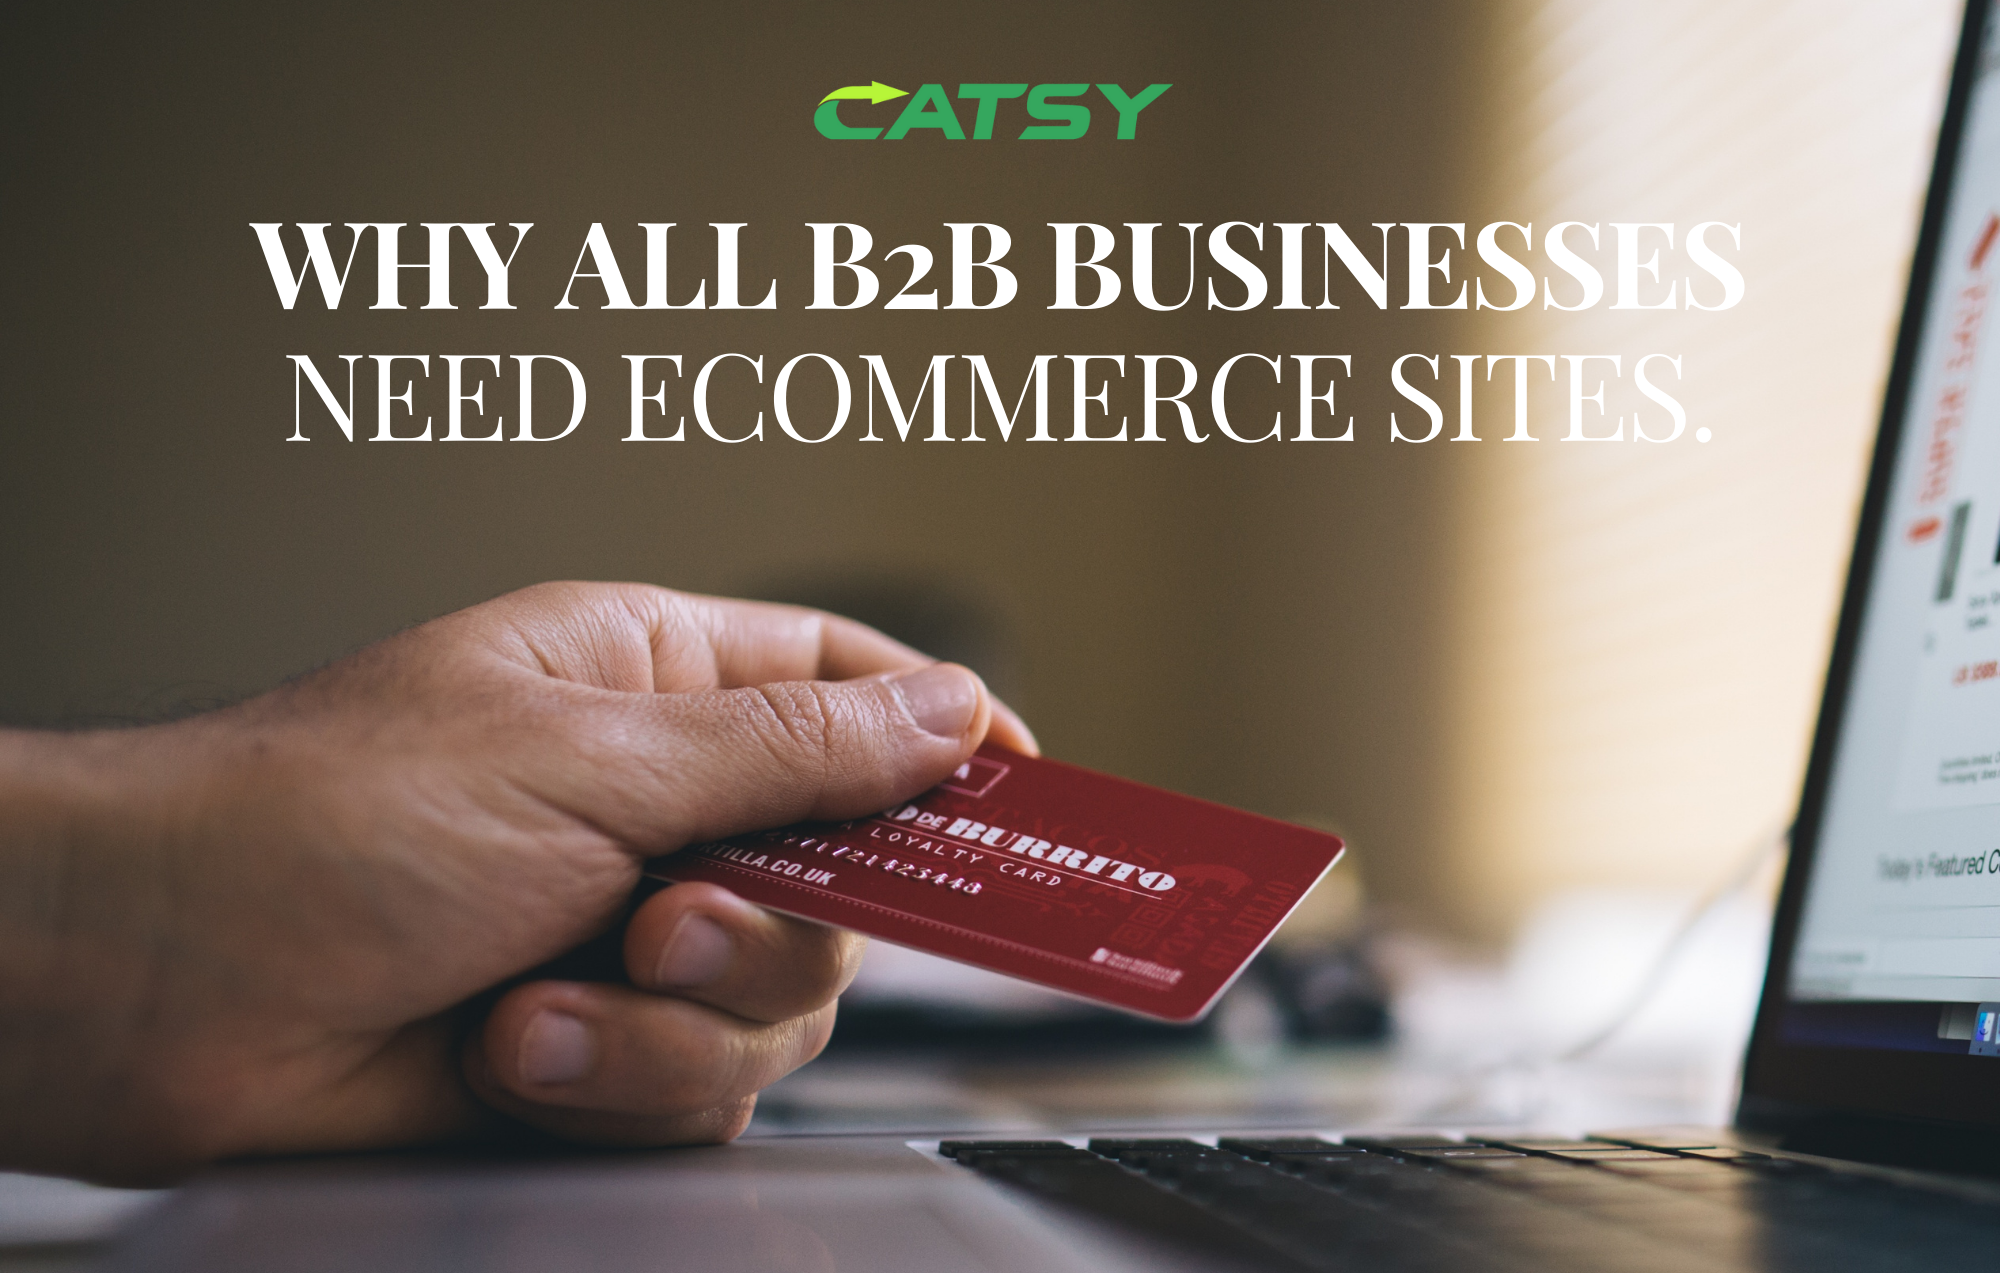 Why all B2B Businesses Need eCommerce Sites.